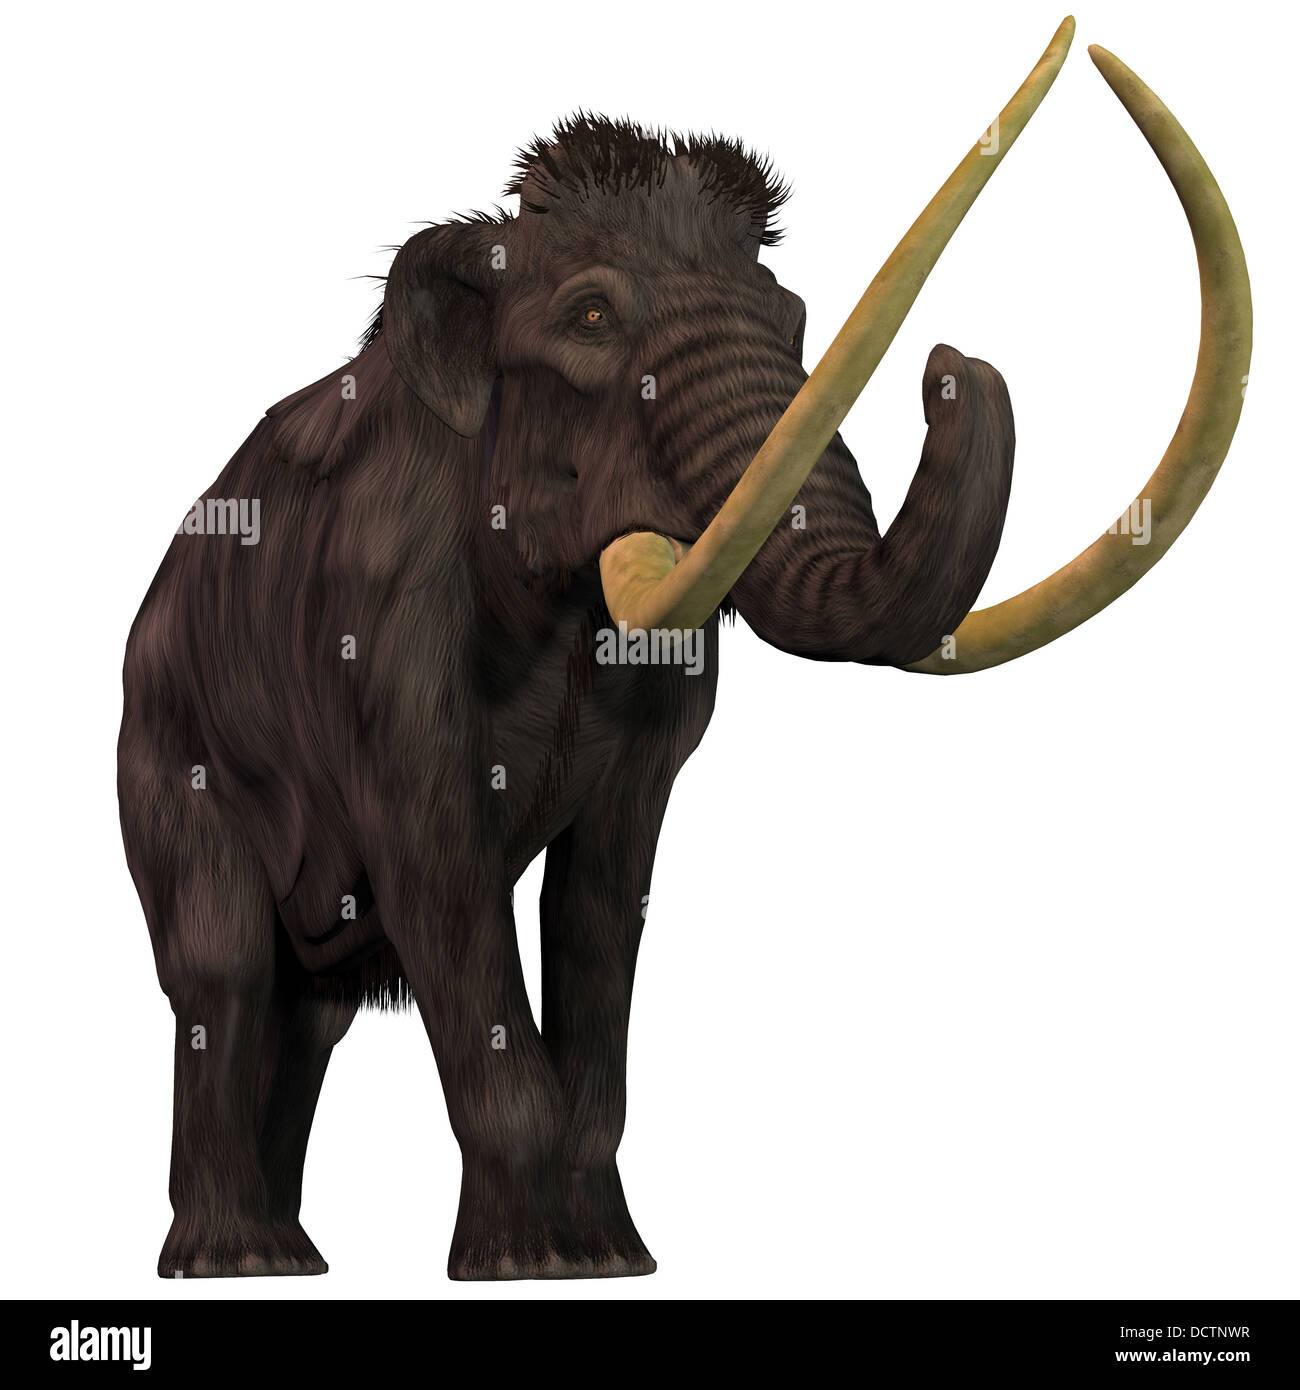 Woolly Mammoths are extinct herbivorous mammals that lived from the Pleistocene to the Holocene Periods. - Stock Image